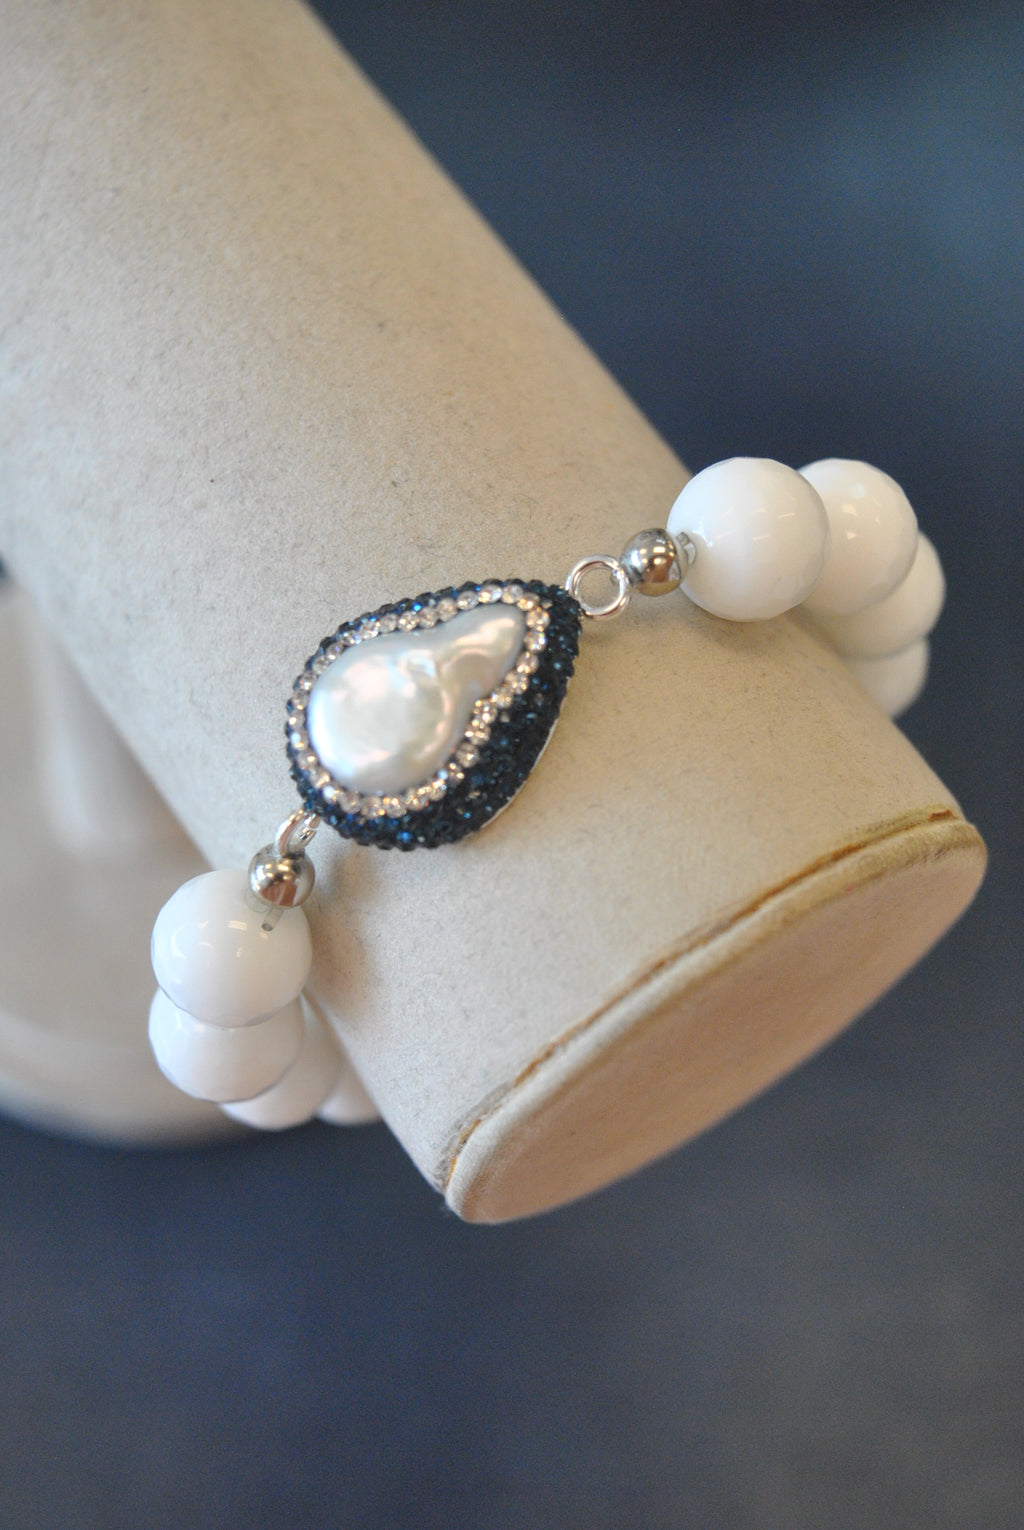 WHITE AGATE MOTHER OF PEARL AND ROYLA BLUE SWAROVSKI CRYTALS STRETCHY BRACELET